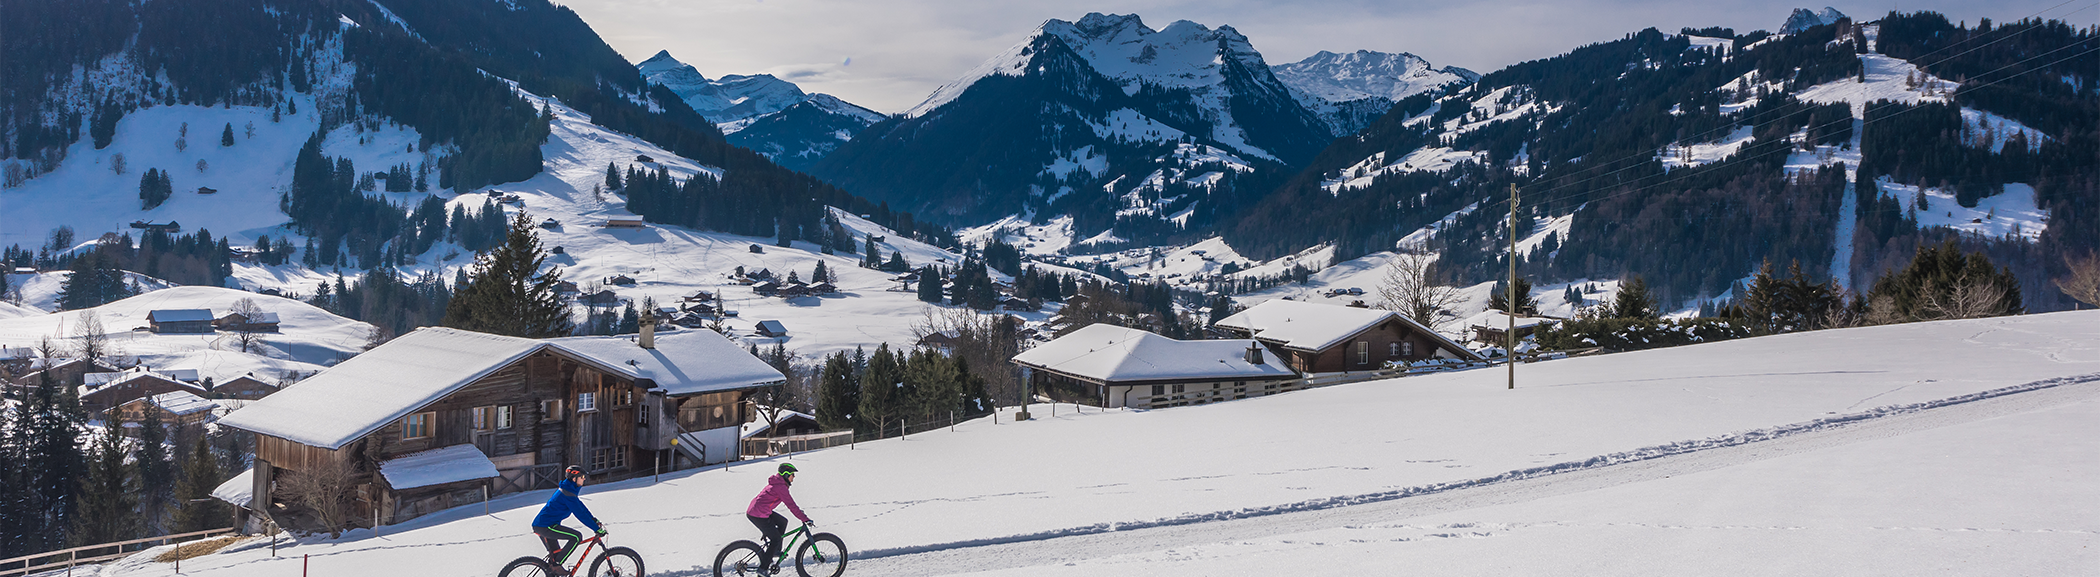 Mobiler Tourismus Guide iGstaad